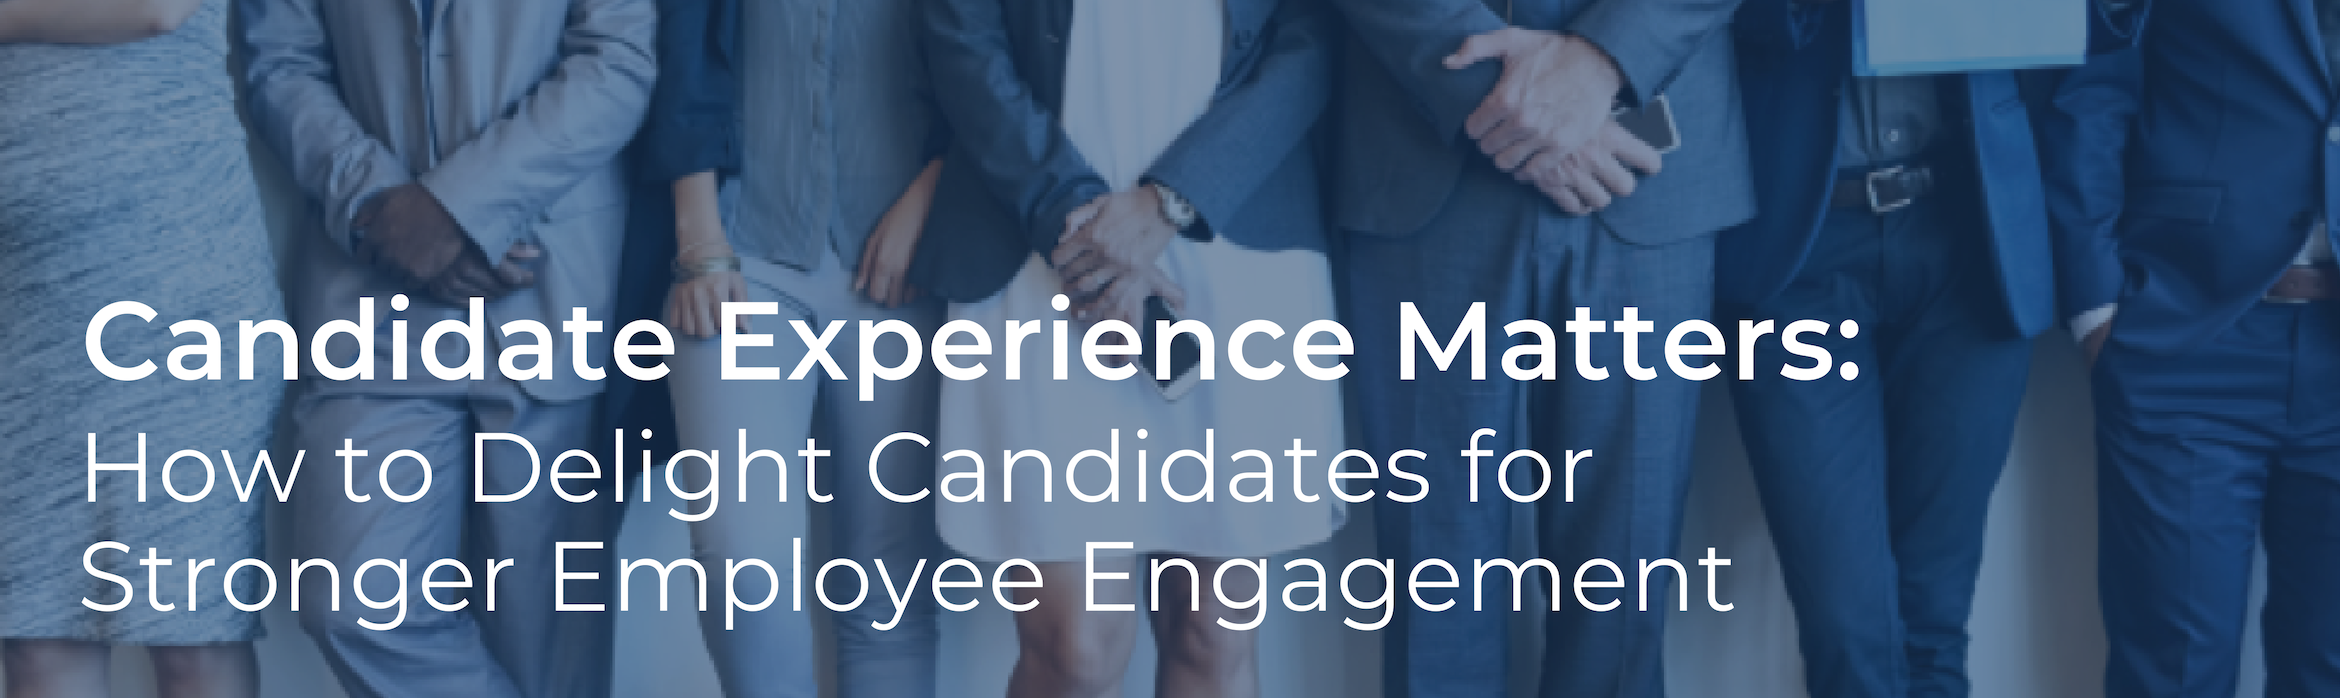 Candidate Experience Matters